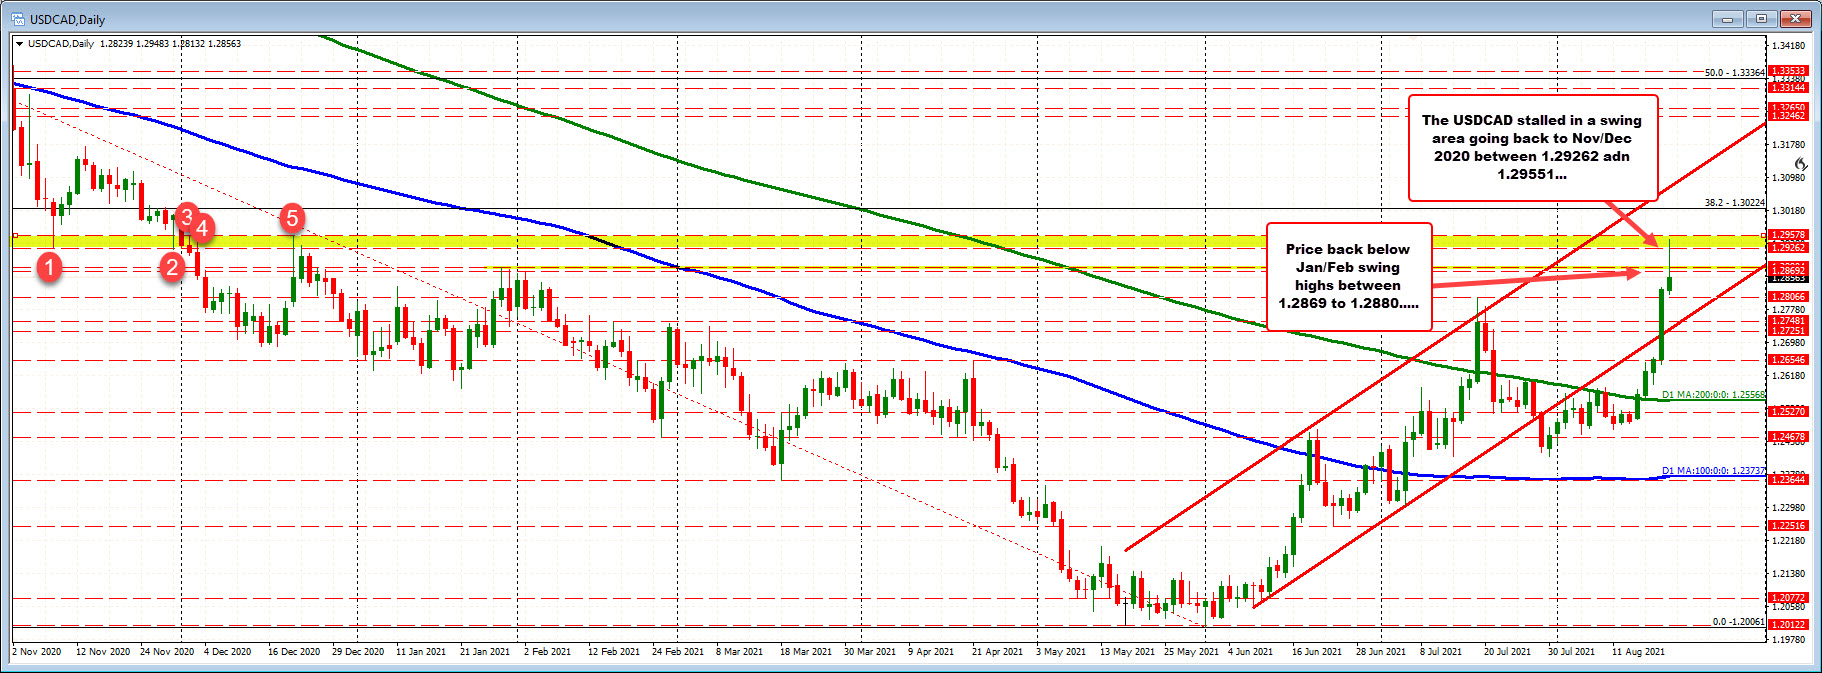 USDCAD retraces gains and moves below old 2021 year highs